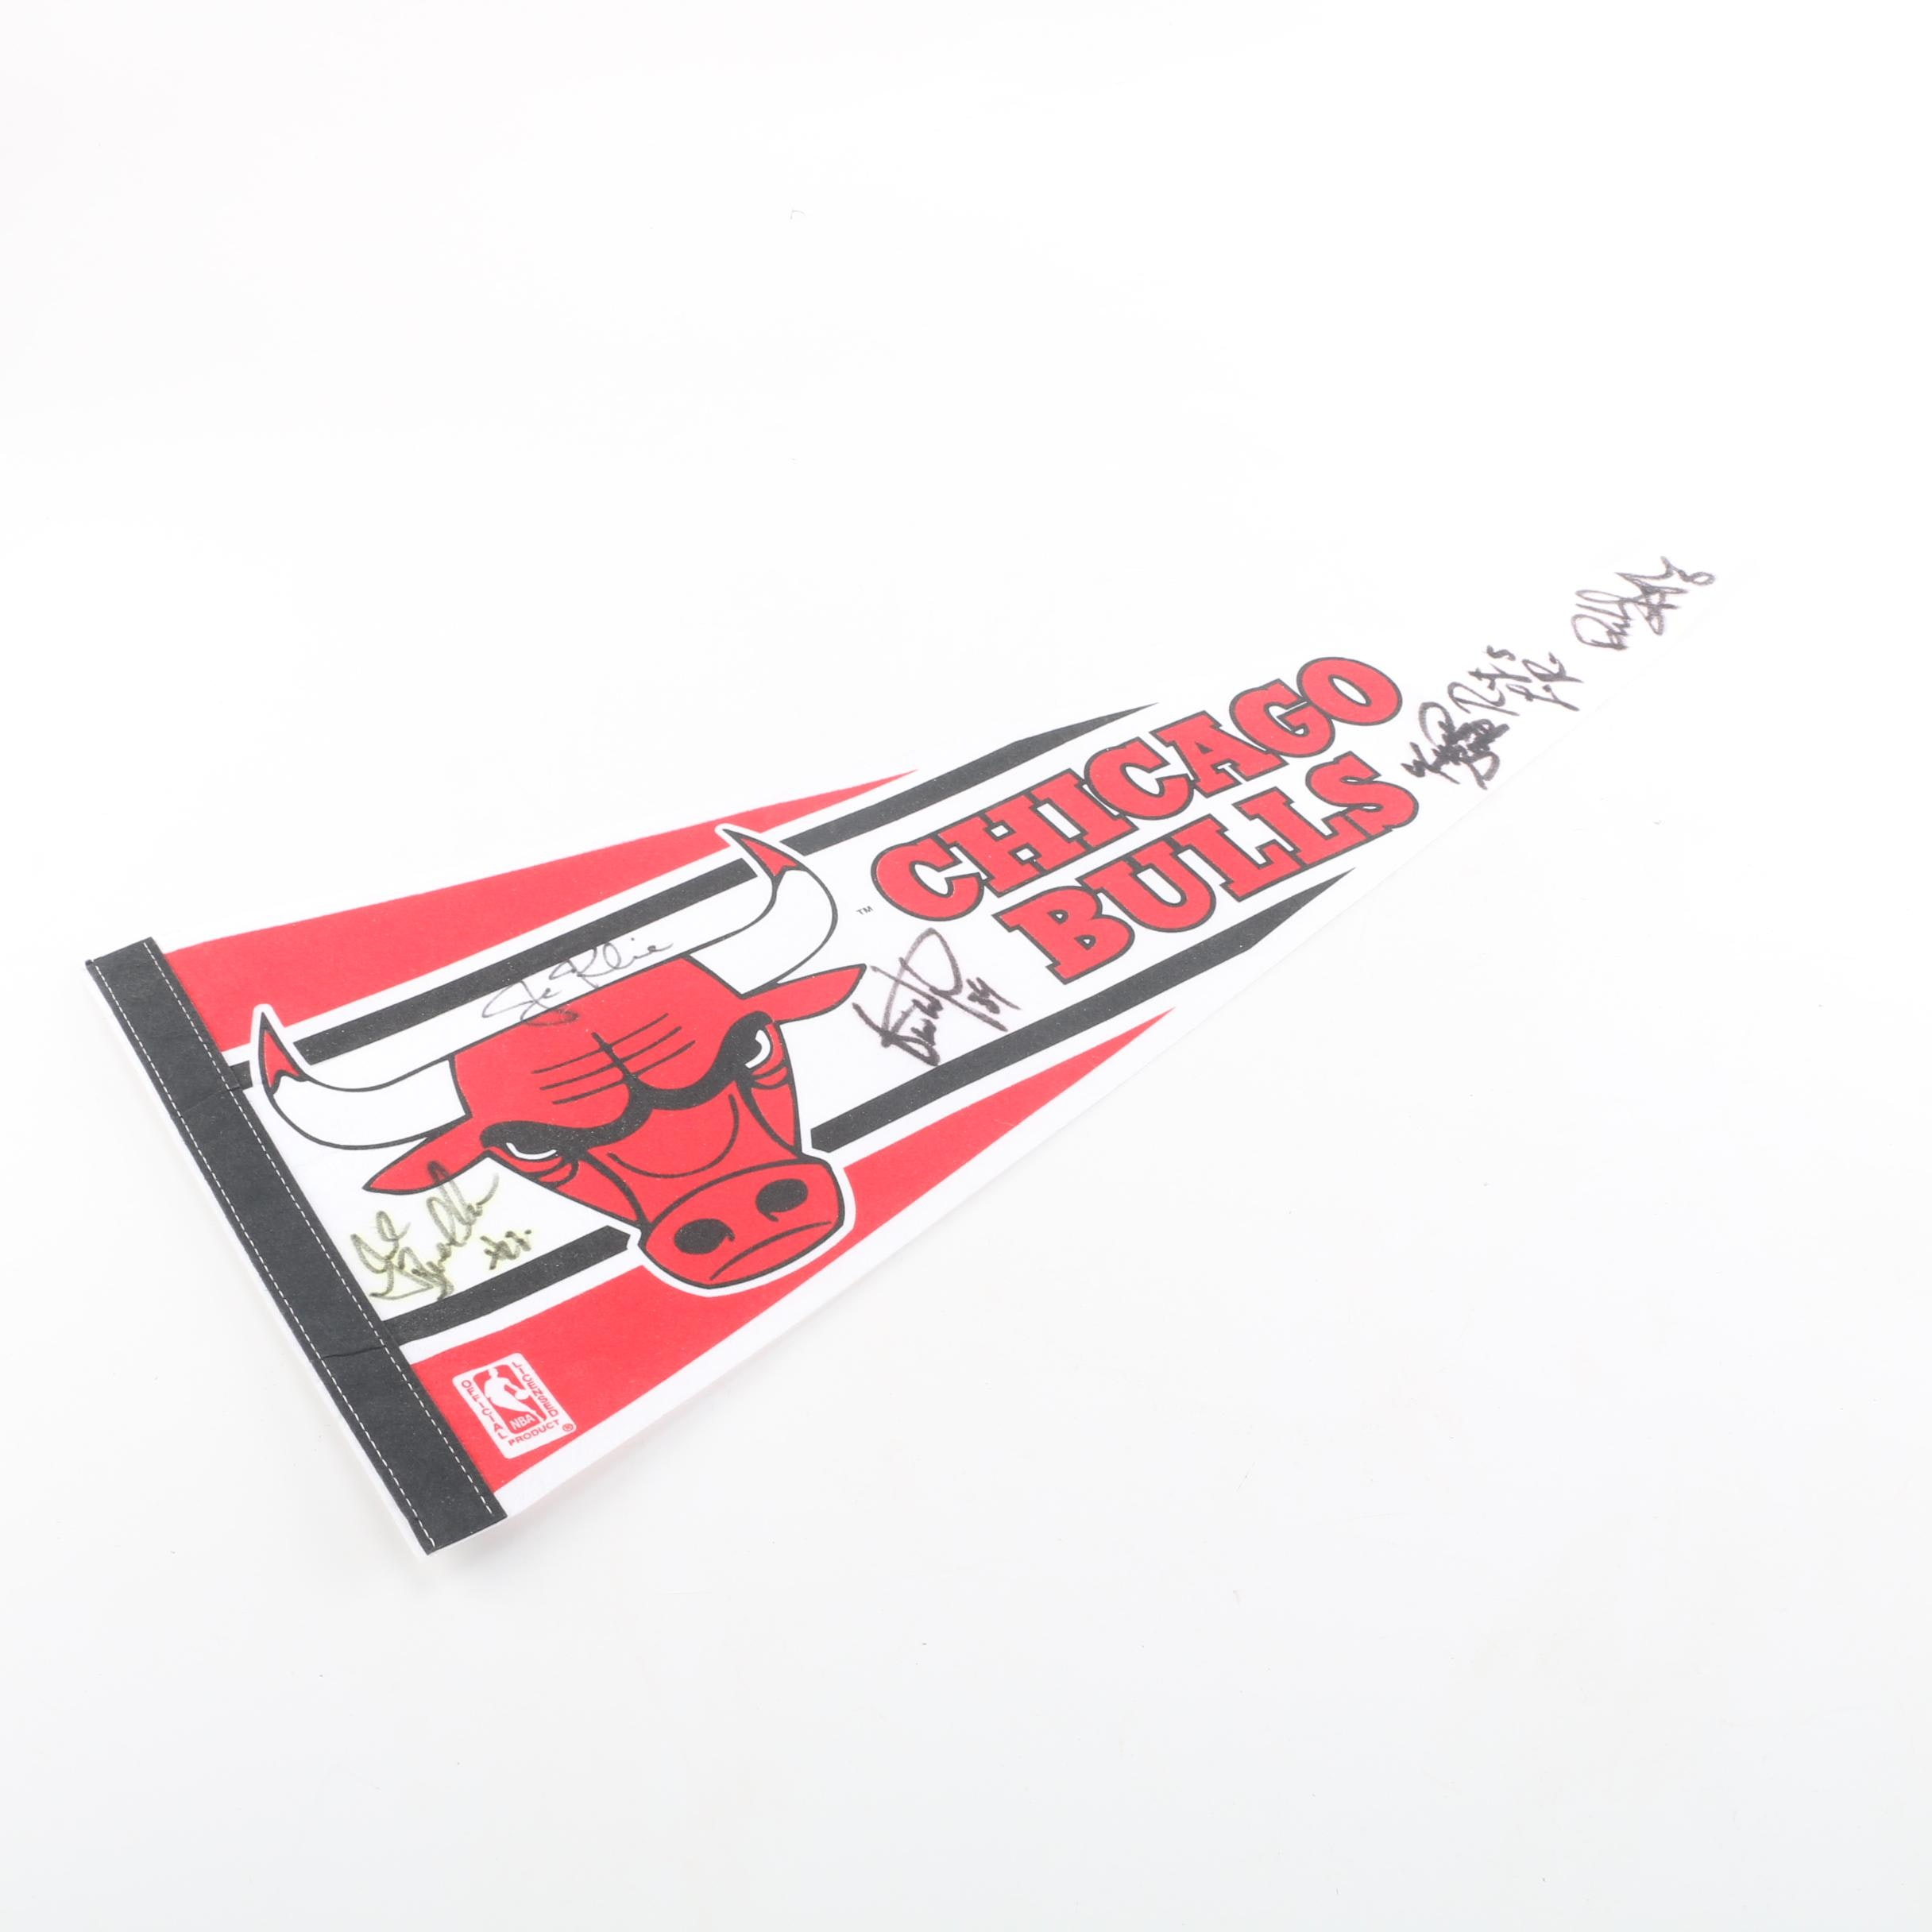 Chicago Bulls Autographed Pennant Including Bill Wennington